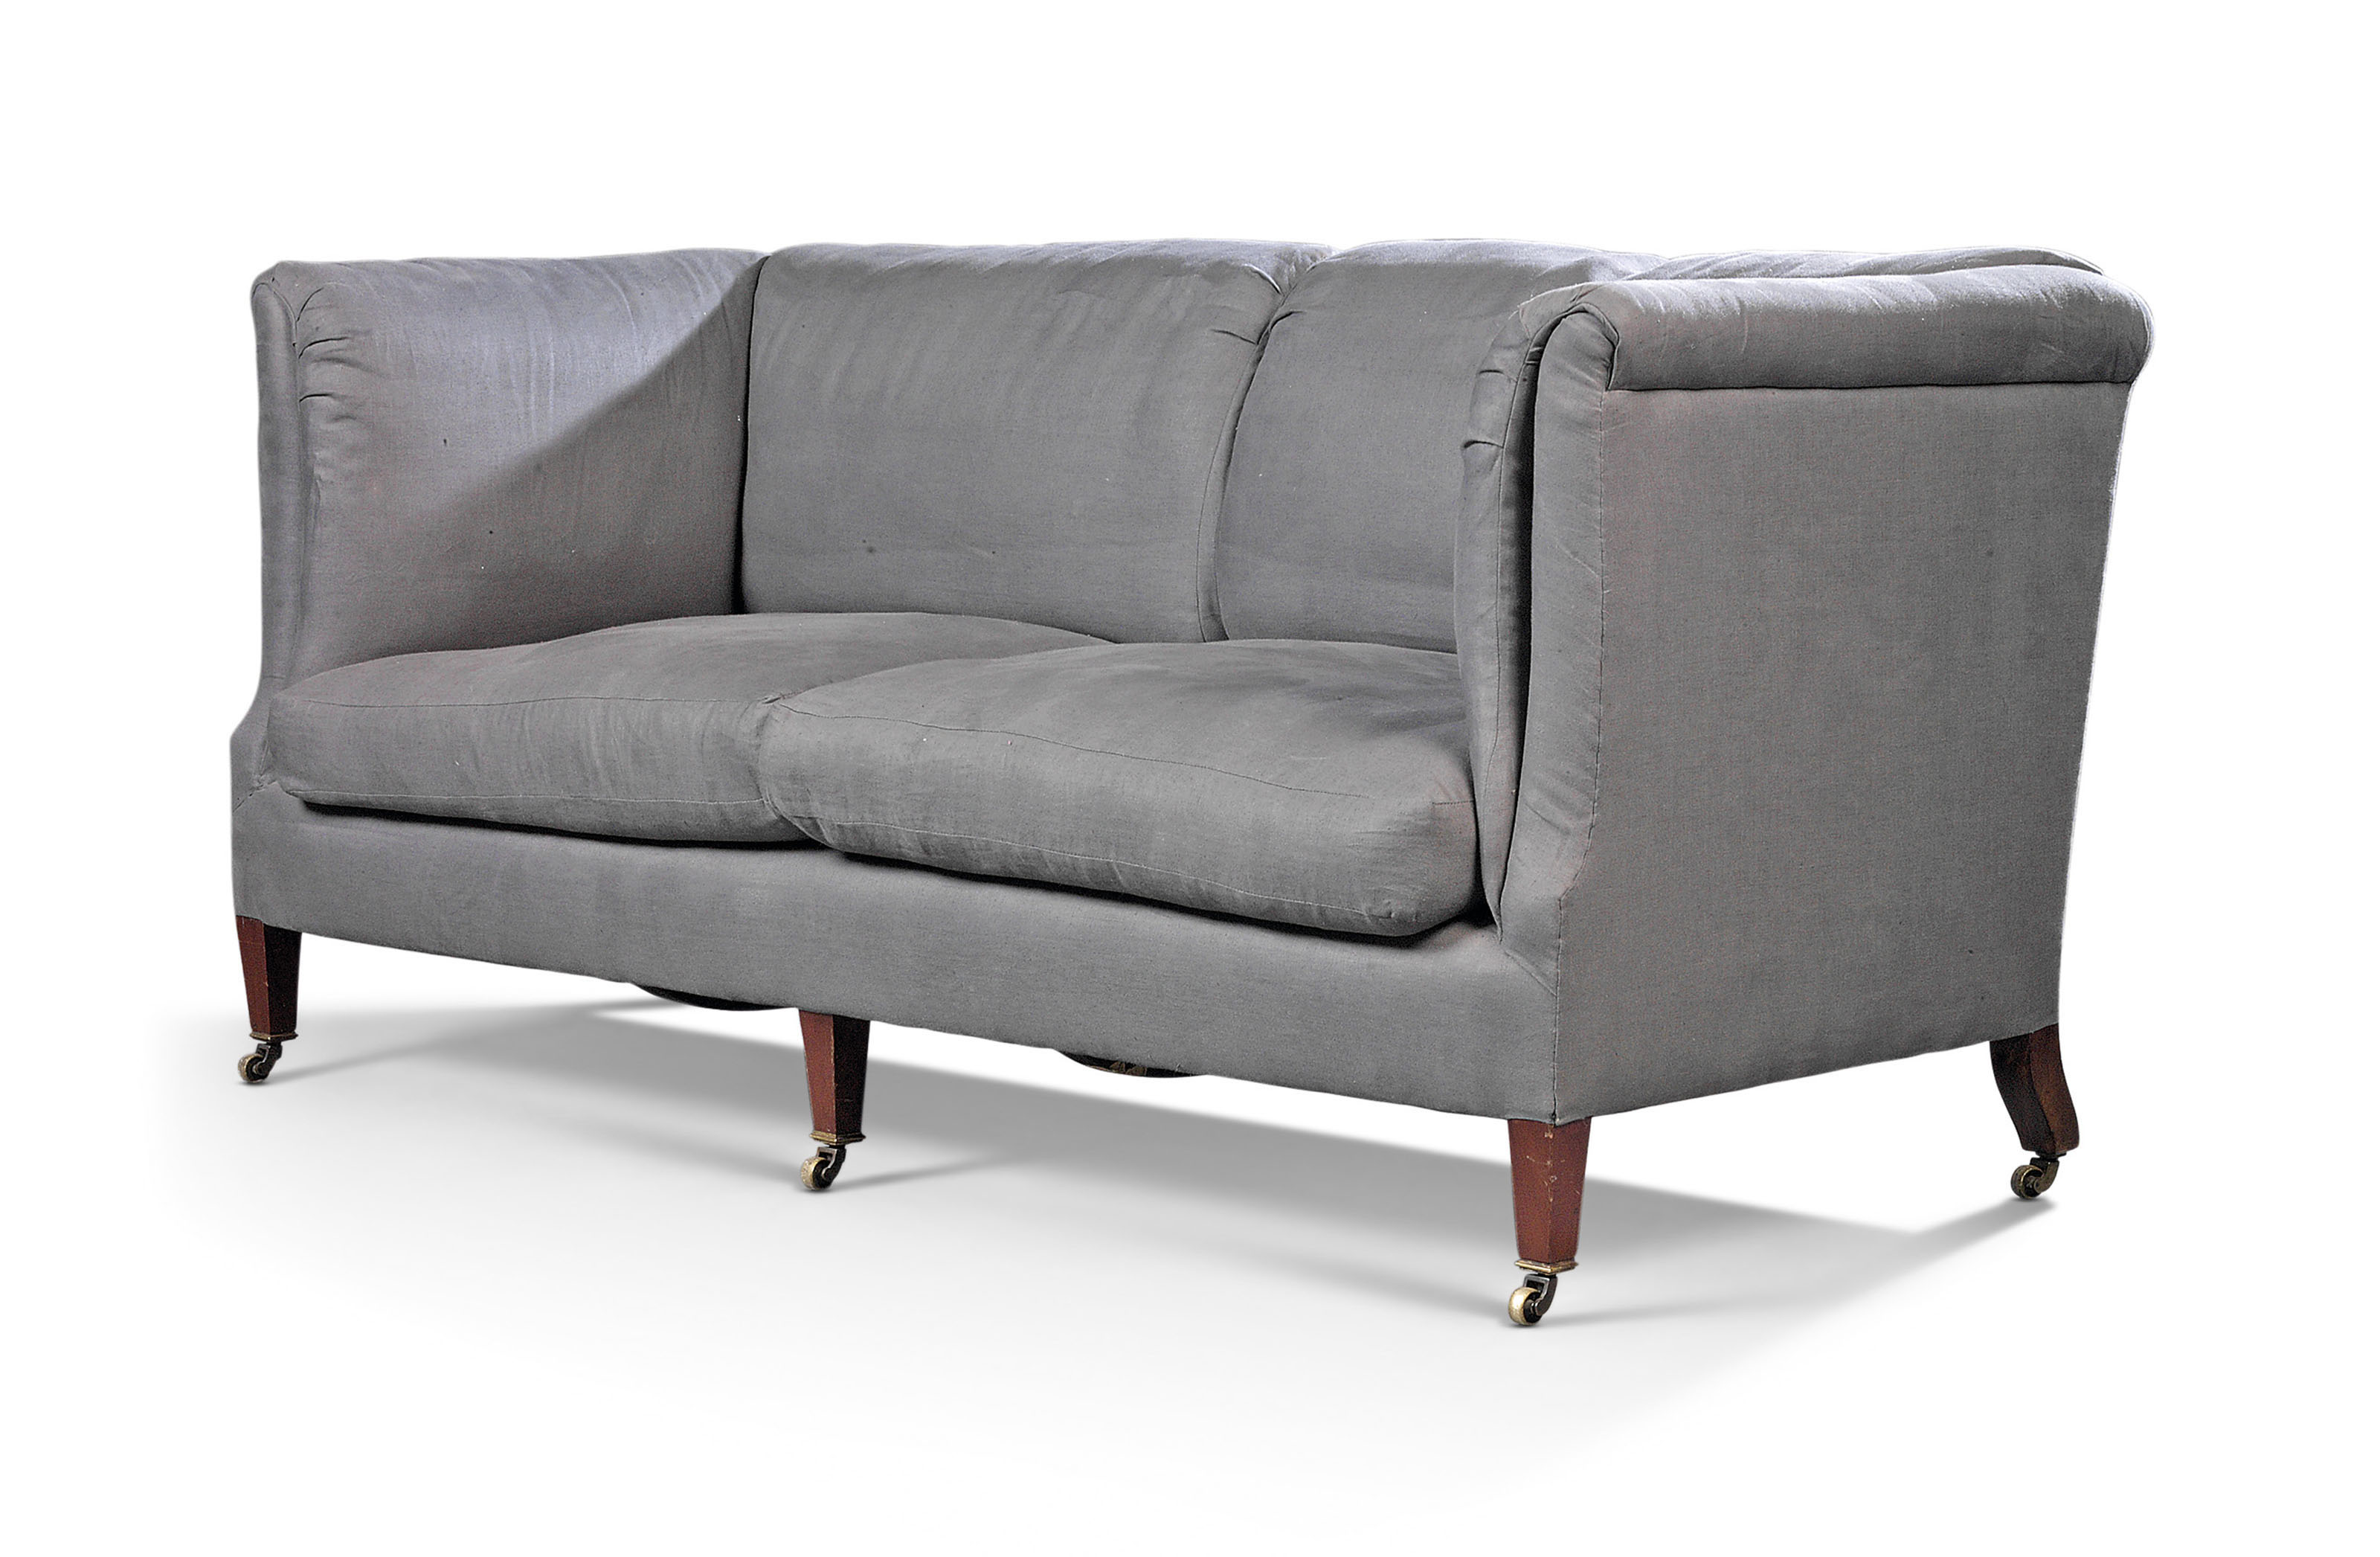 Sensational An English Upholstered Baring Sofa By Howard And Sons Machost Co Dining Chair Design Ideas Machostcouk